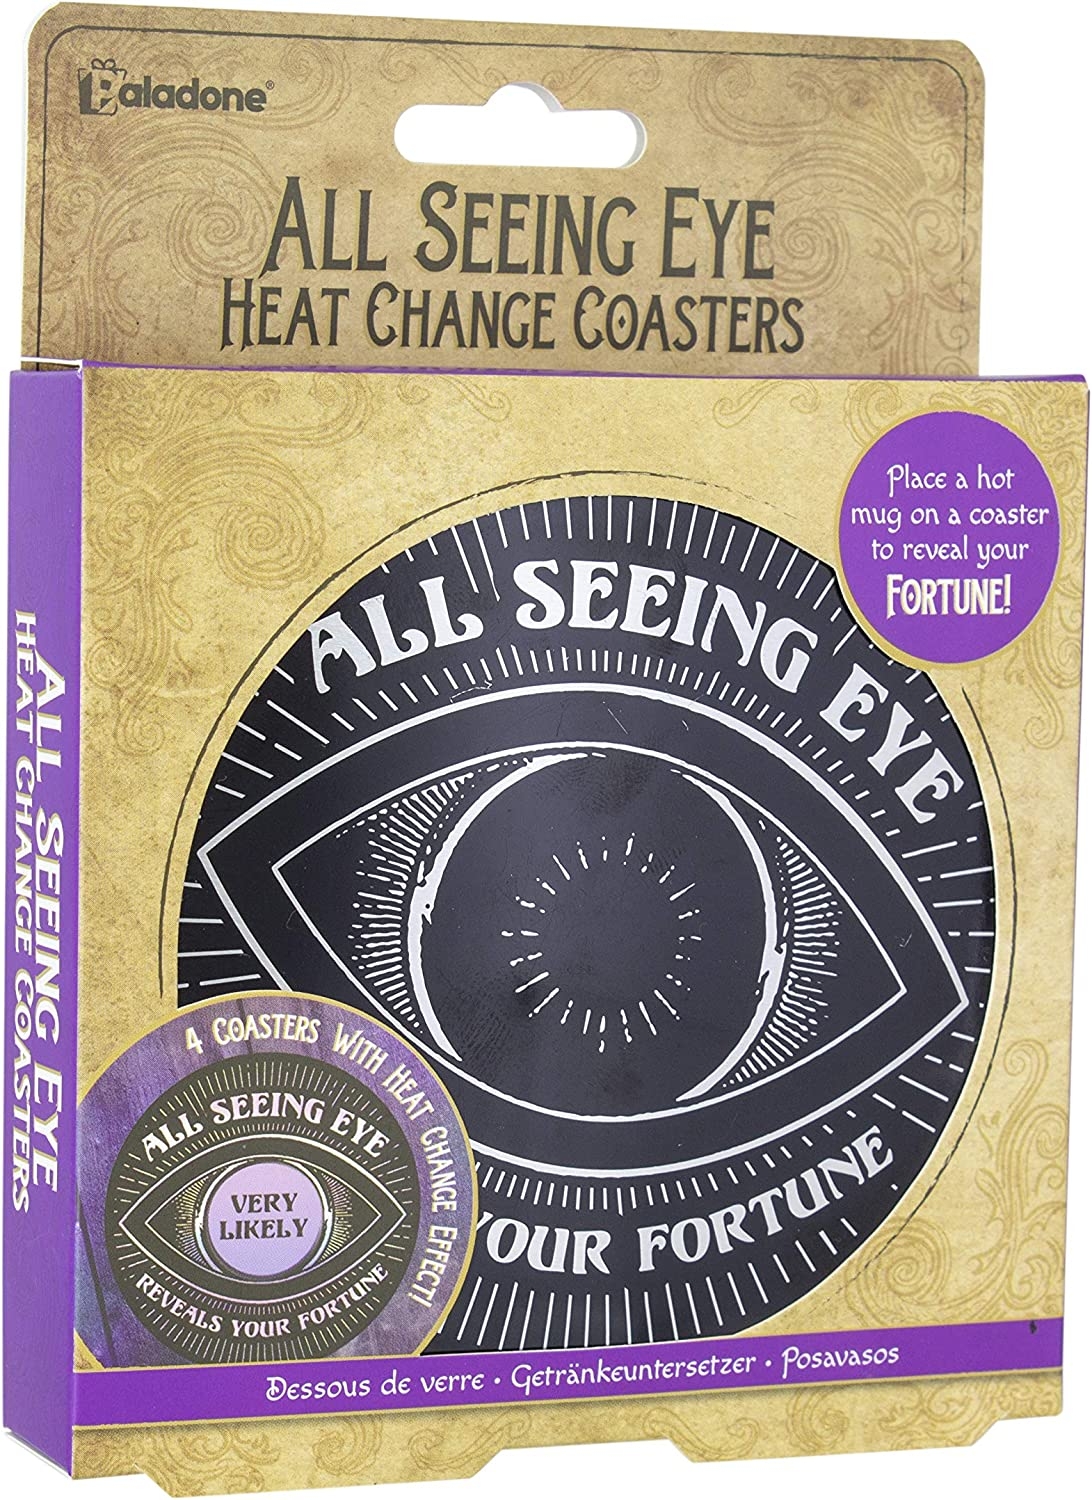 All Seeing Eye Coasters - Heat Changing Coasters that Reveal Your Fortune